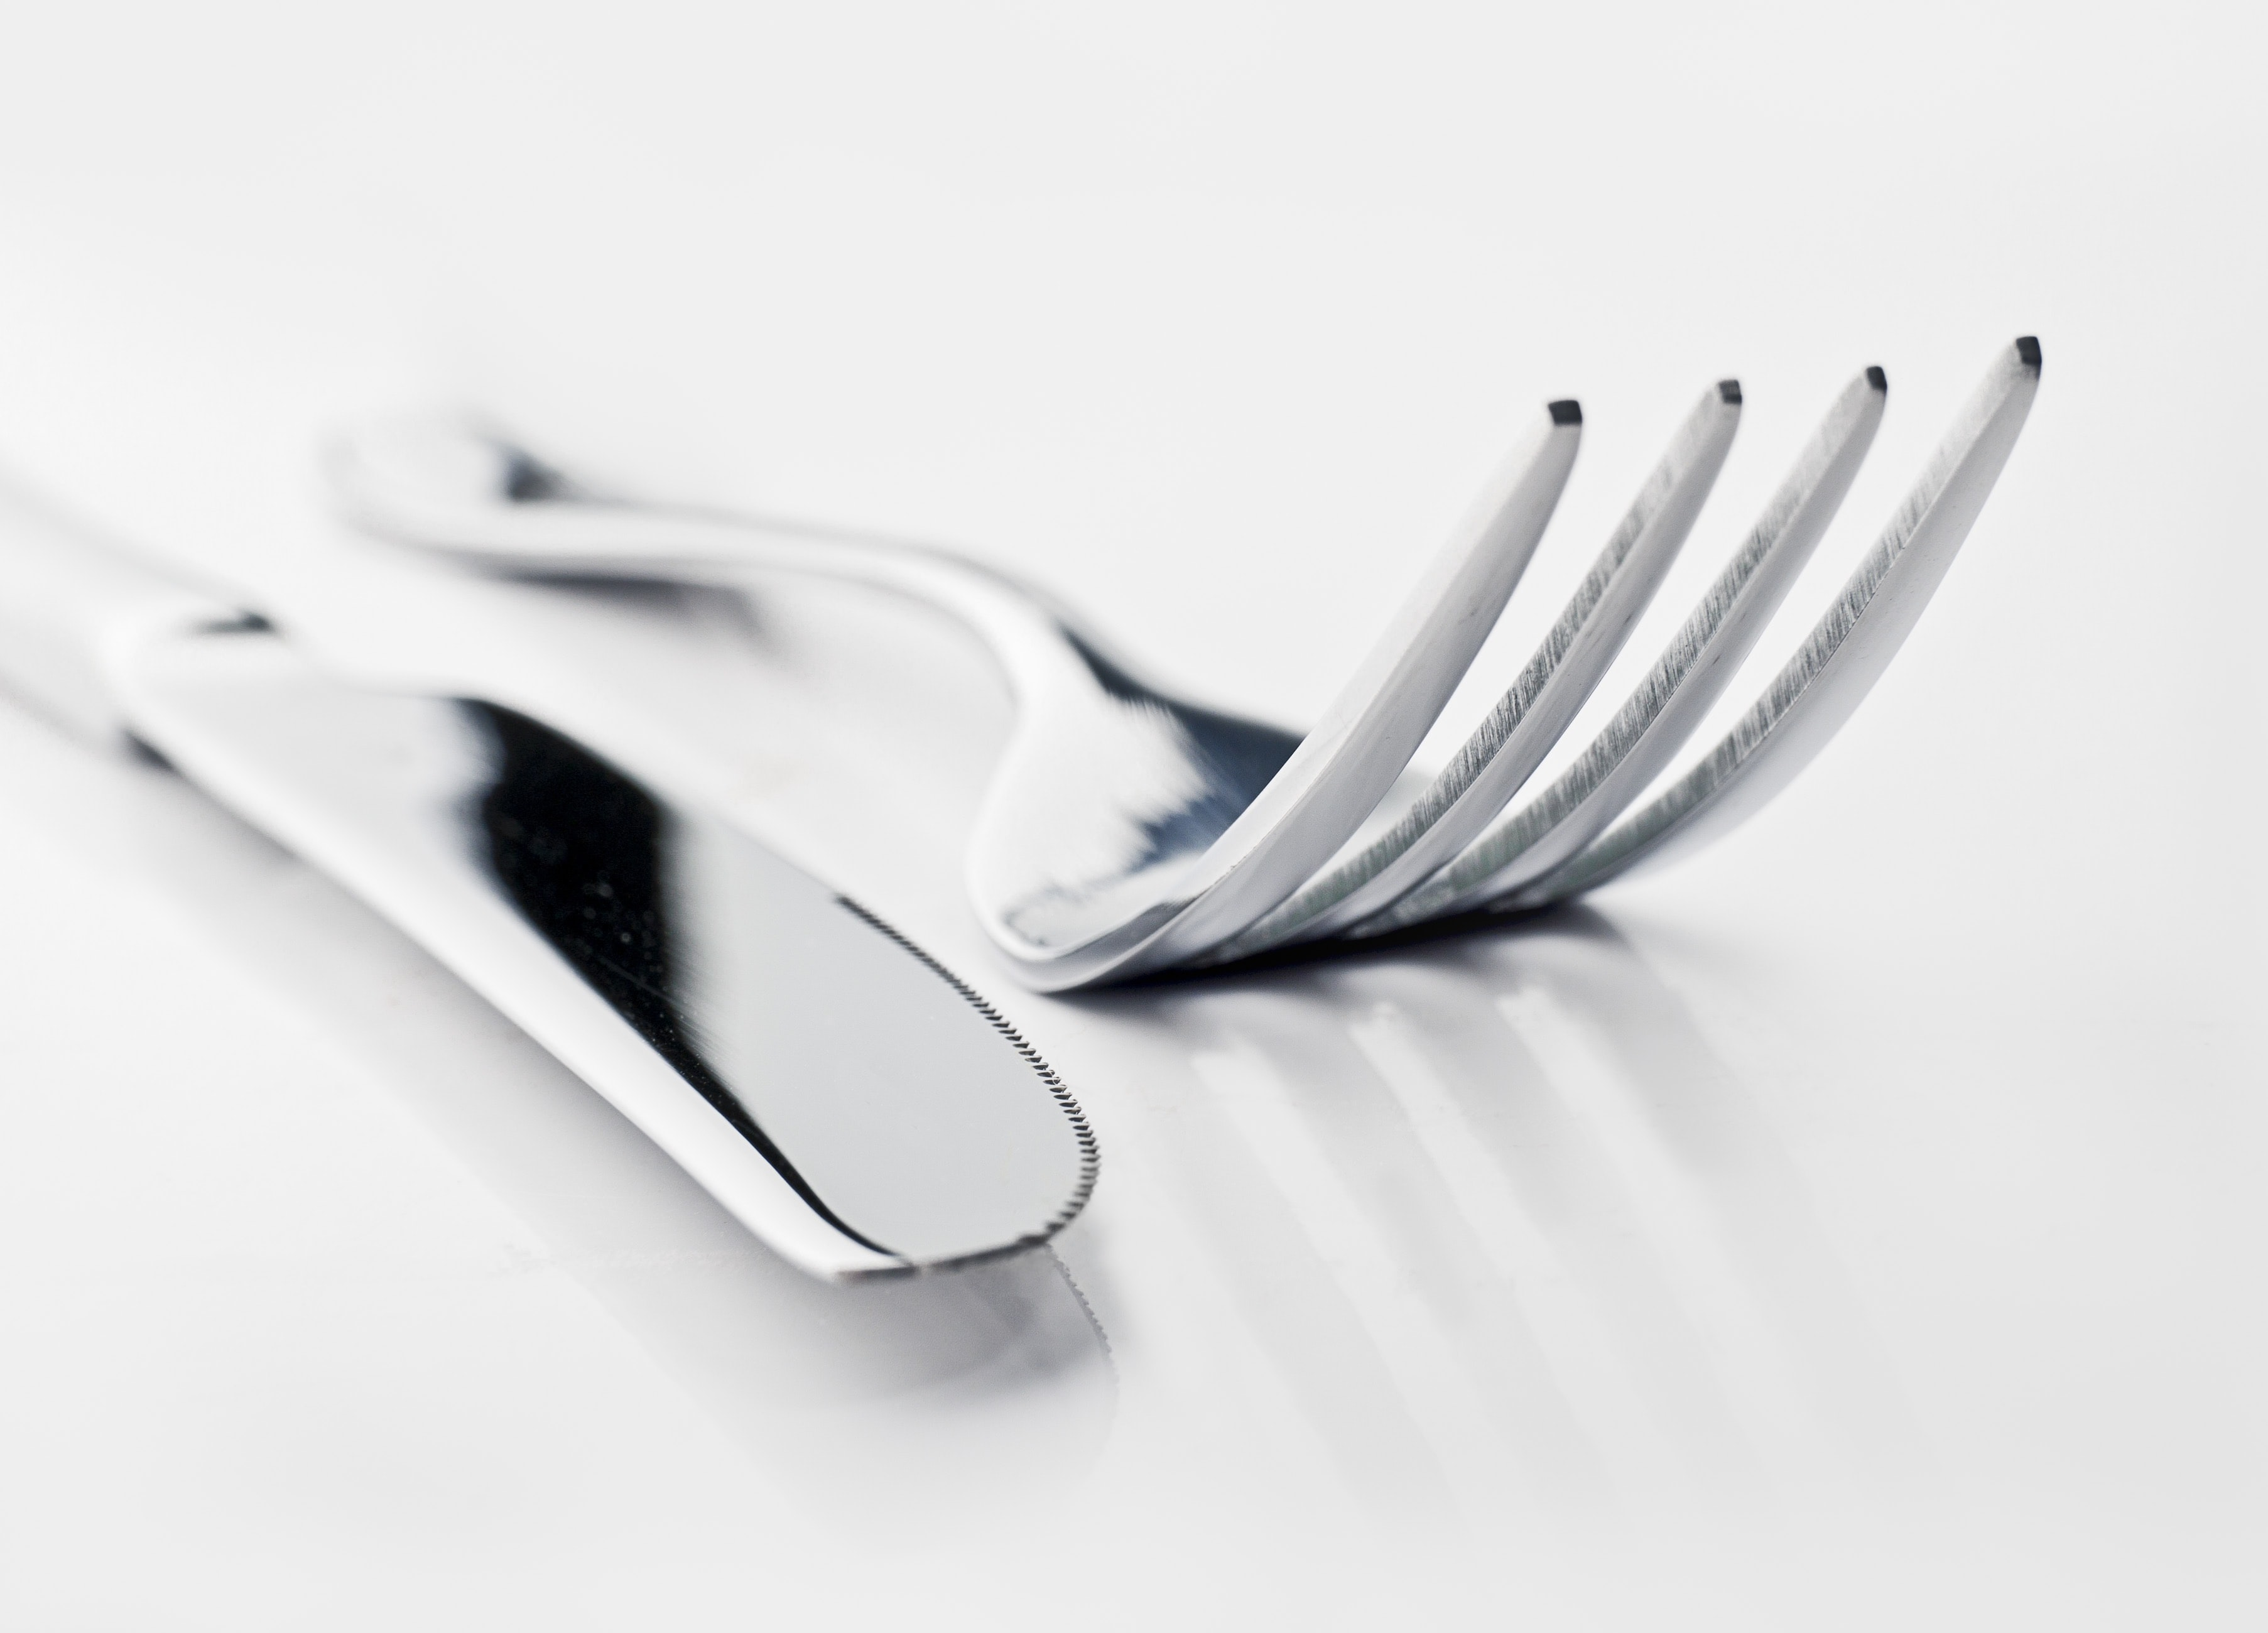 Shiny fork and knife on a white reflective table